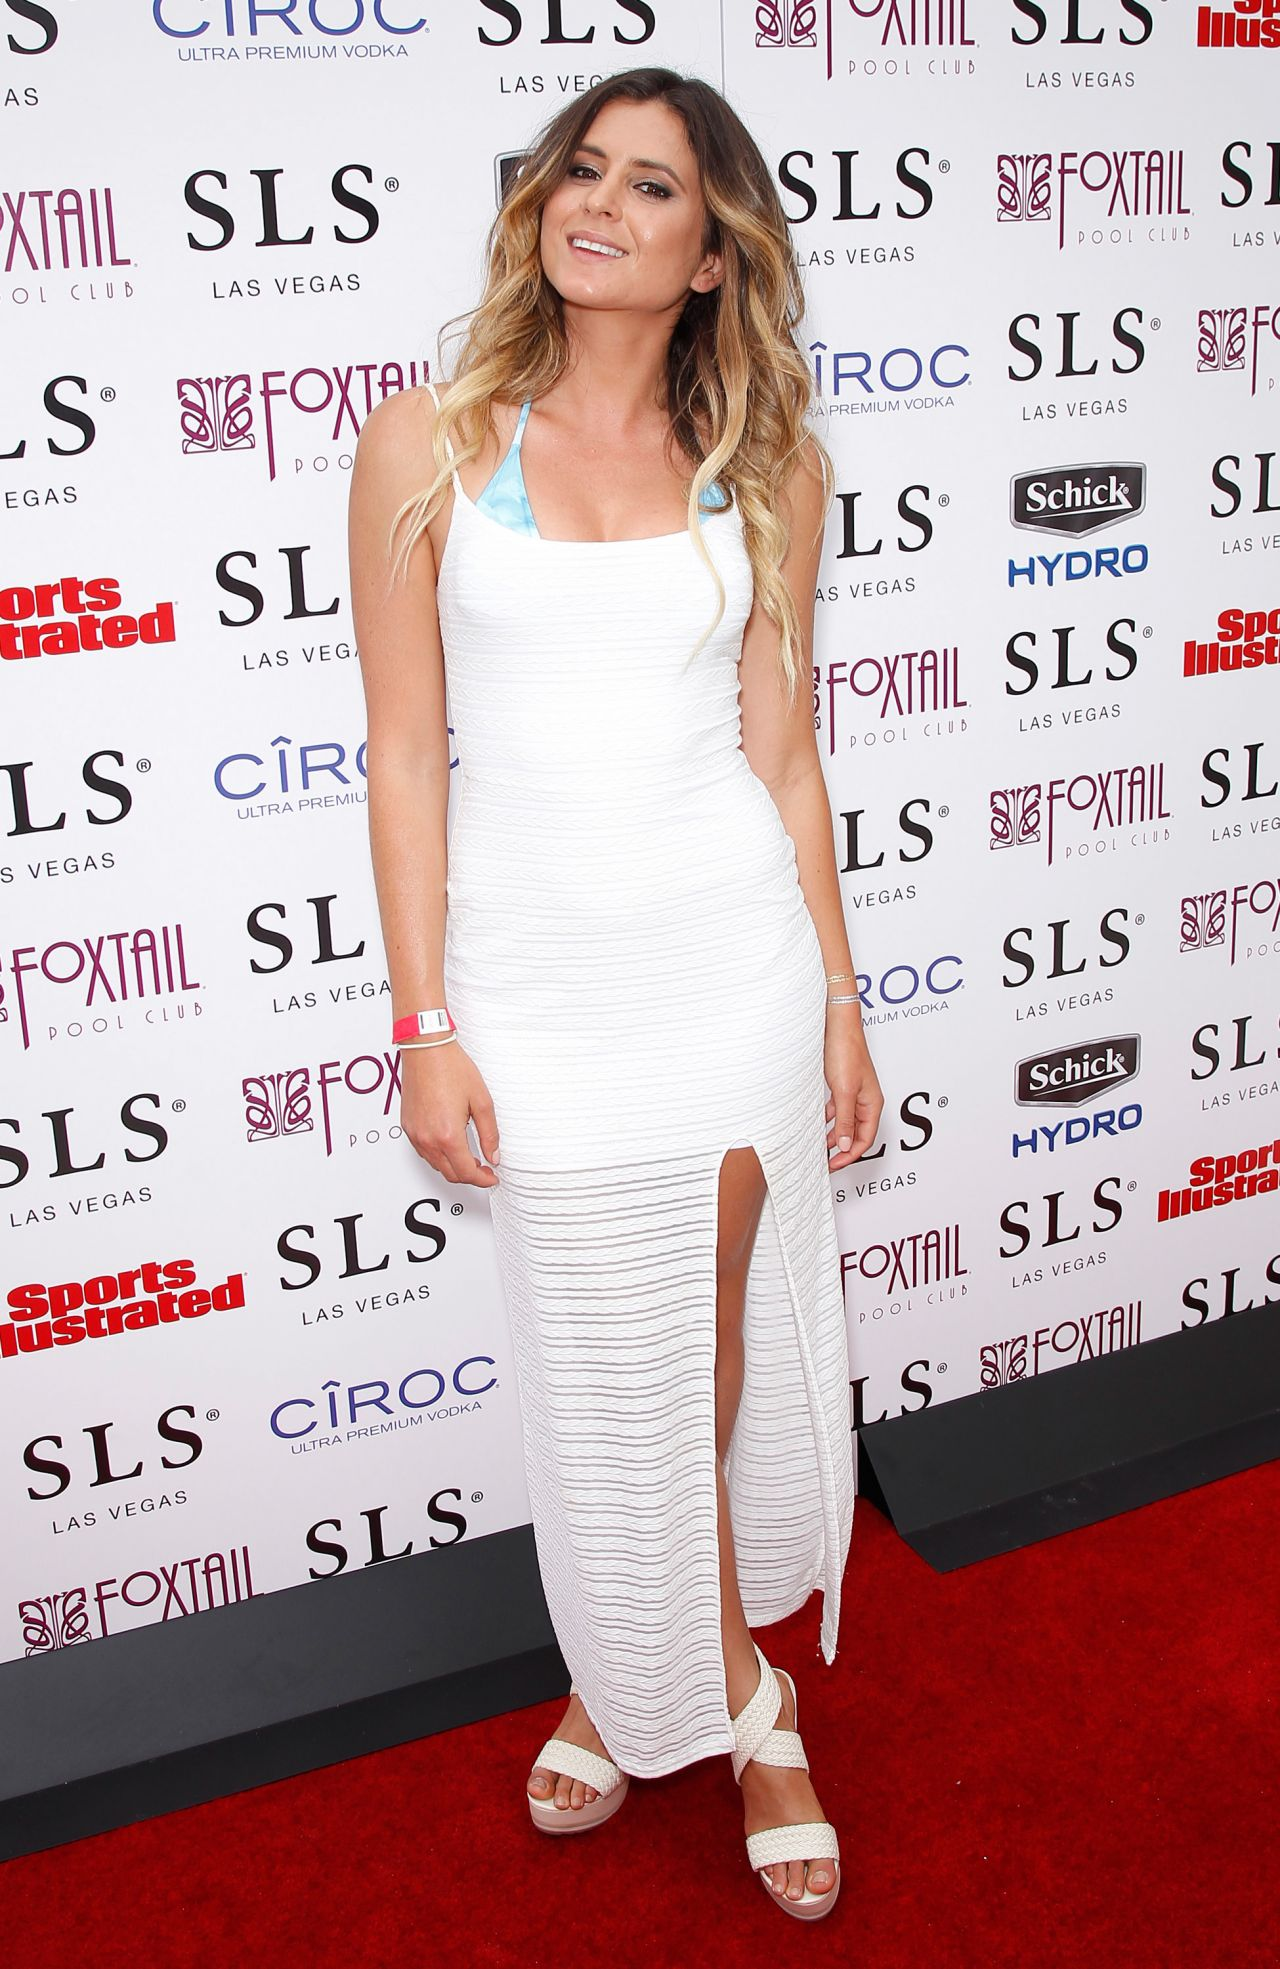 Anastasia Ashley Sports Illustrated Fight Weekend Party